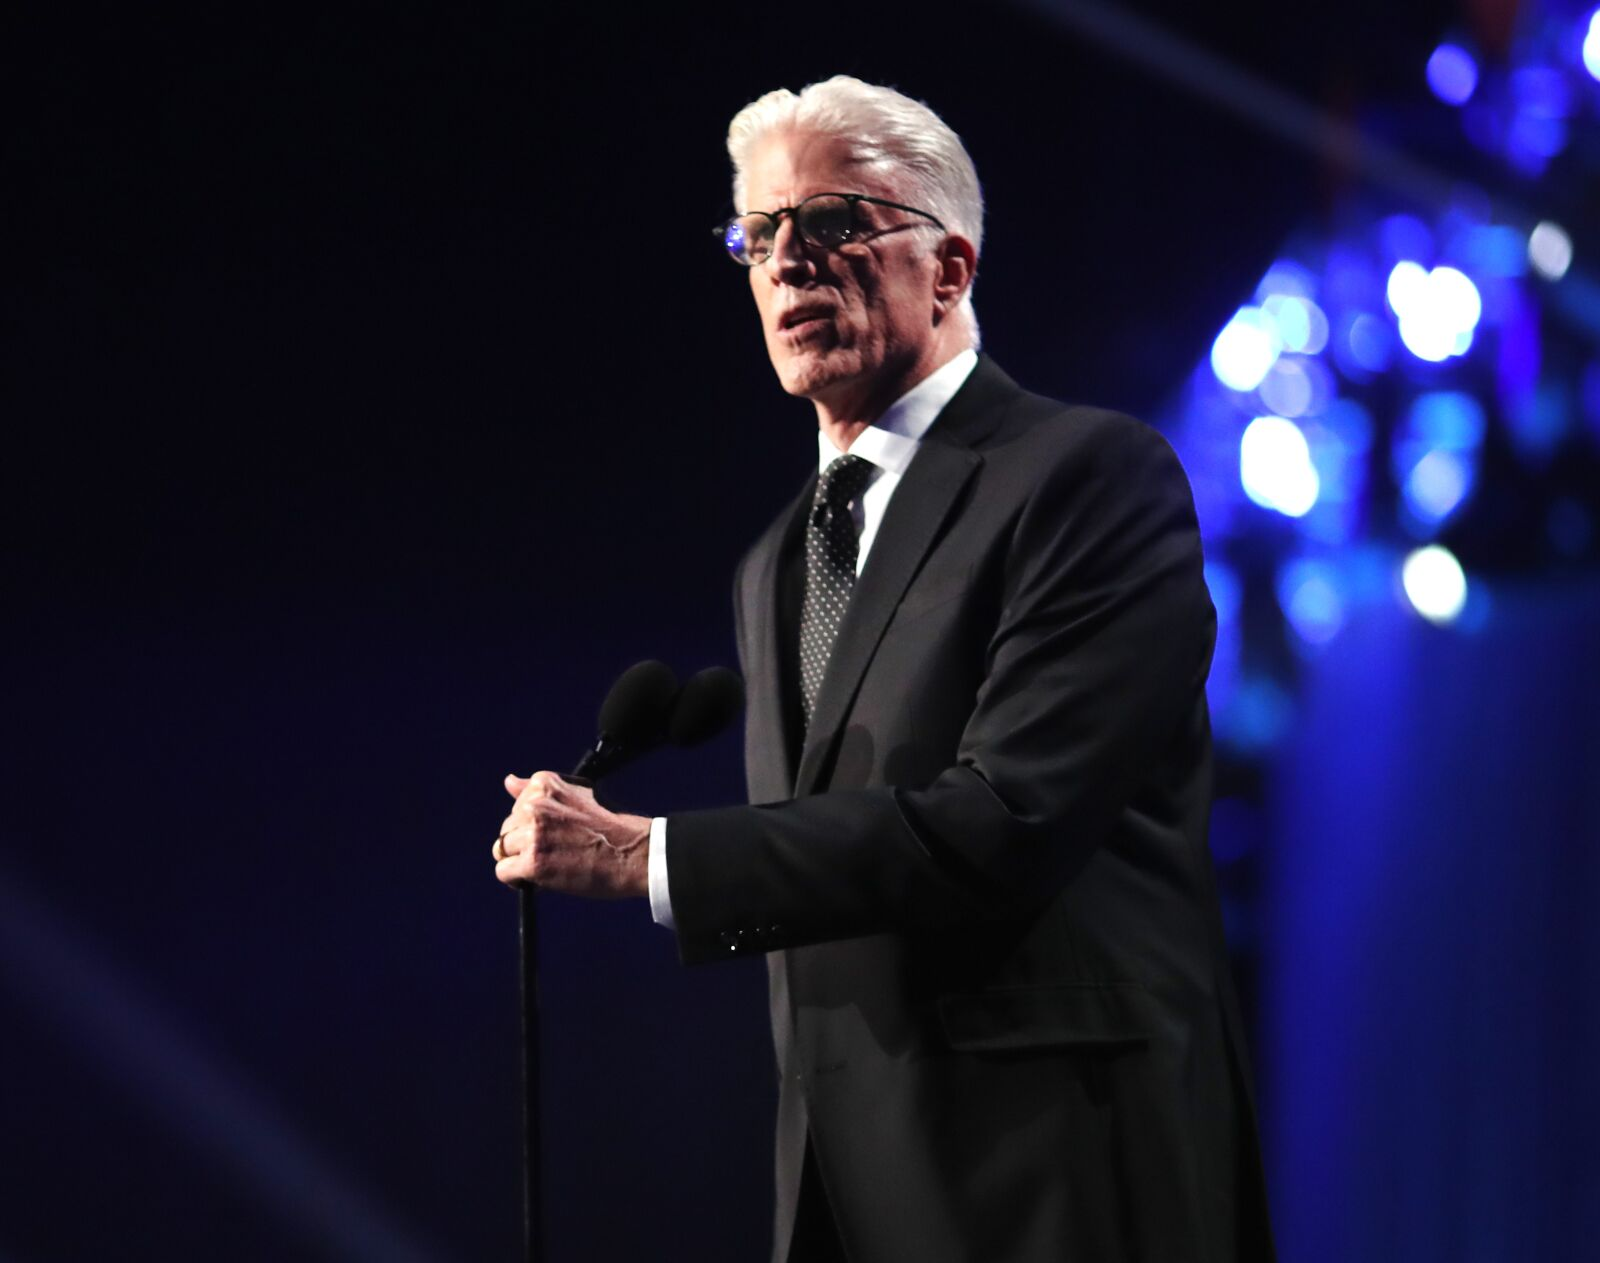 Ted Danson will star in Tina Fey comedy series on NBC